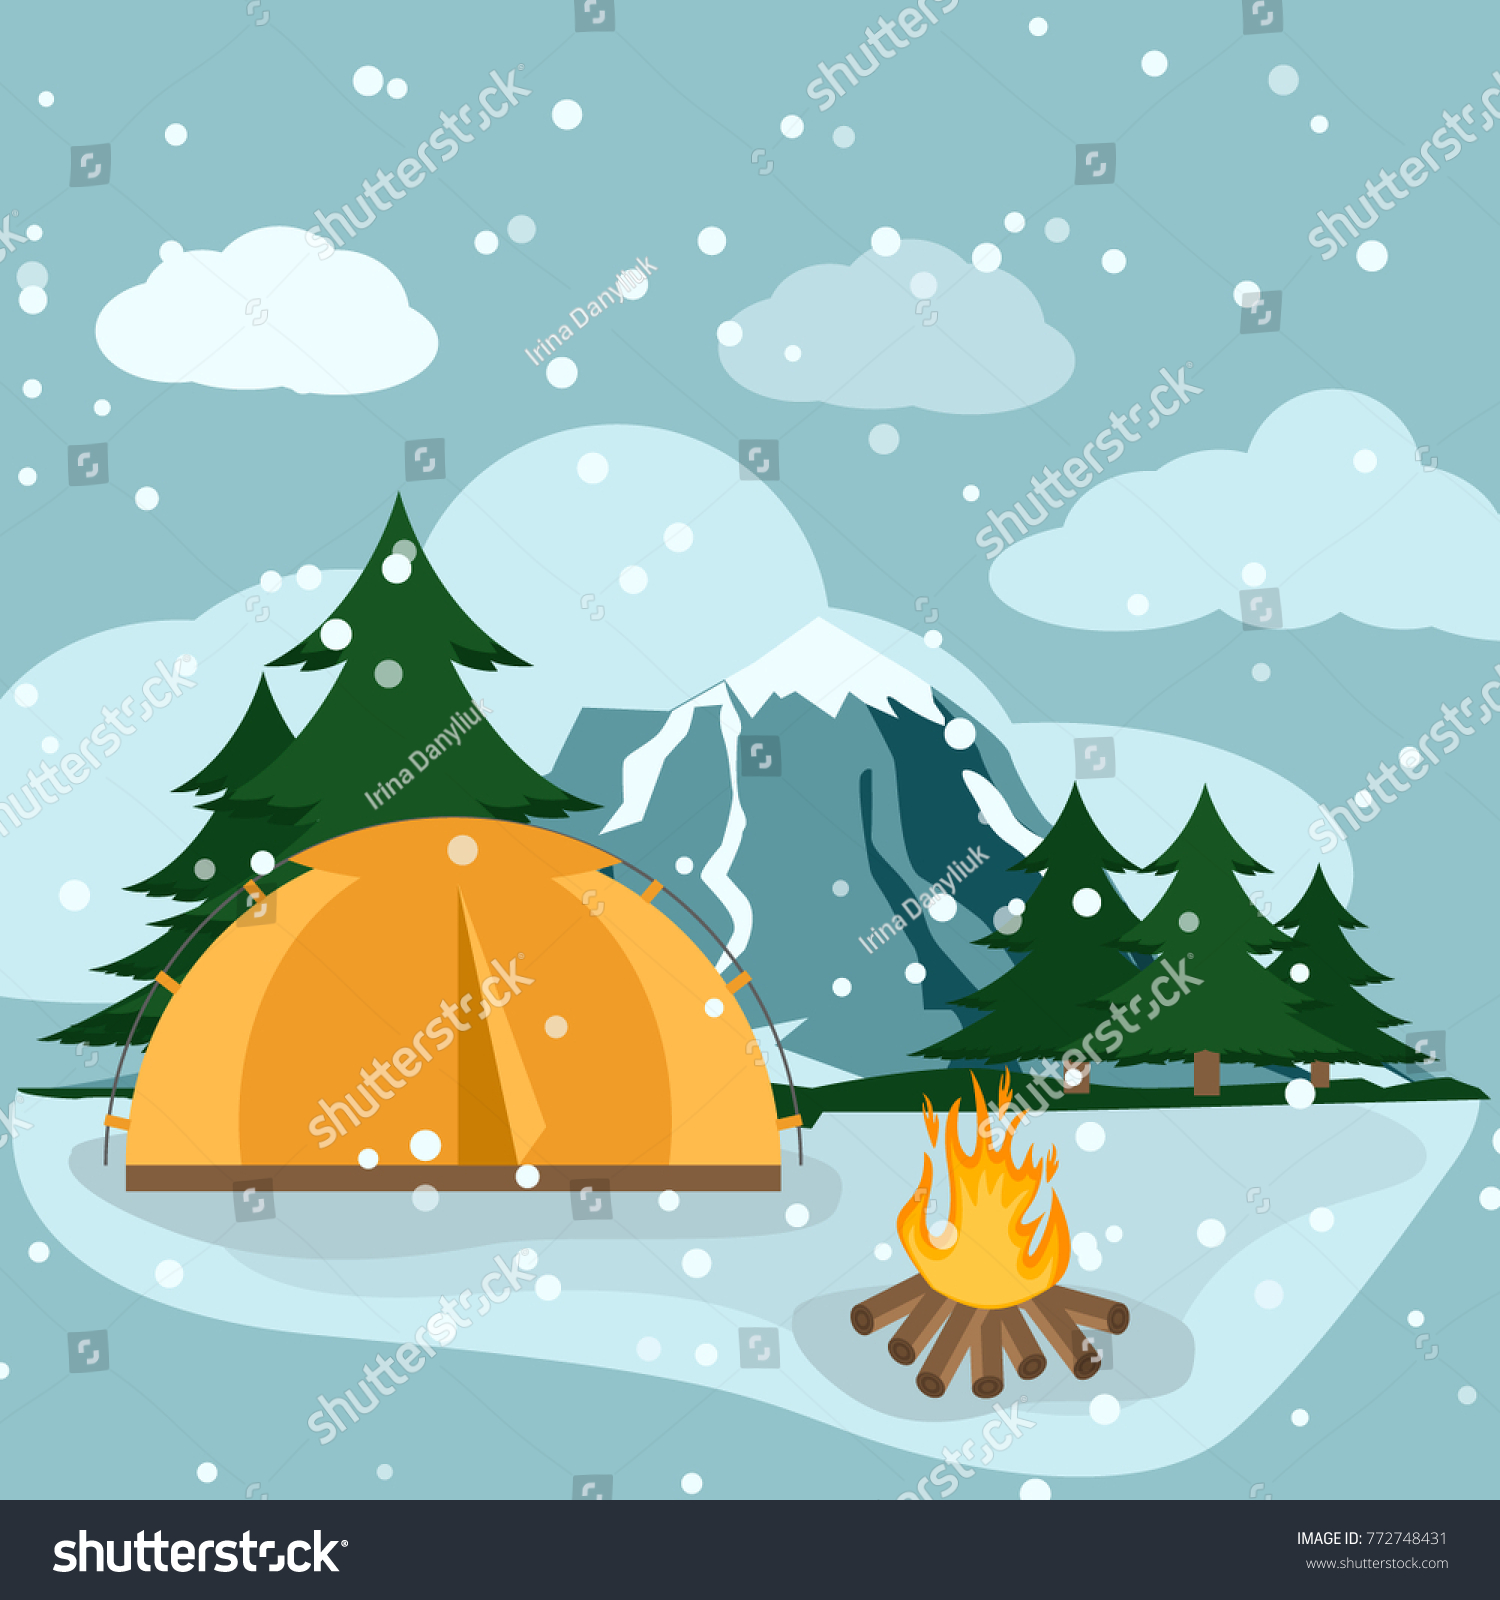 Camping Winter Hiking Adventure Tourist Landscape Stock Vector ...